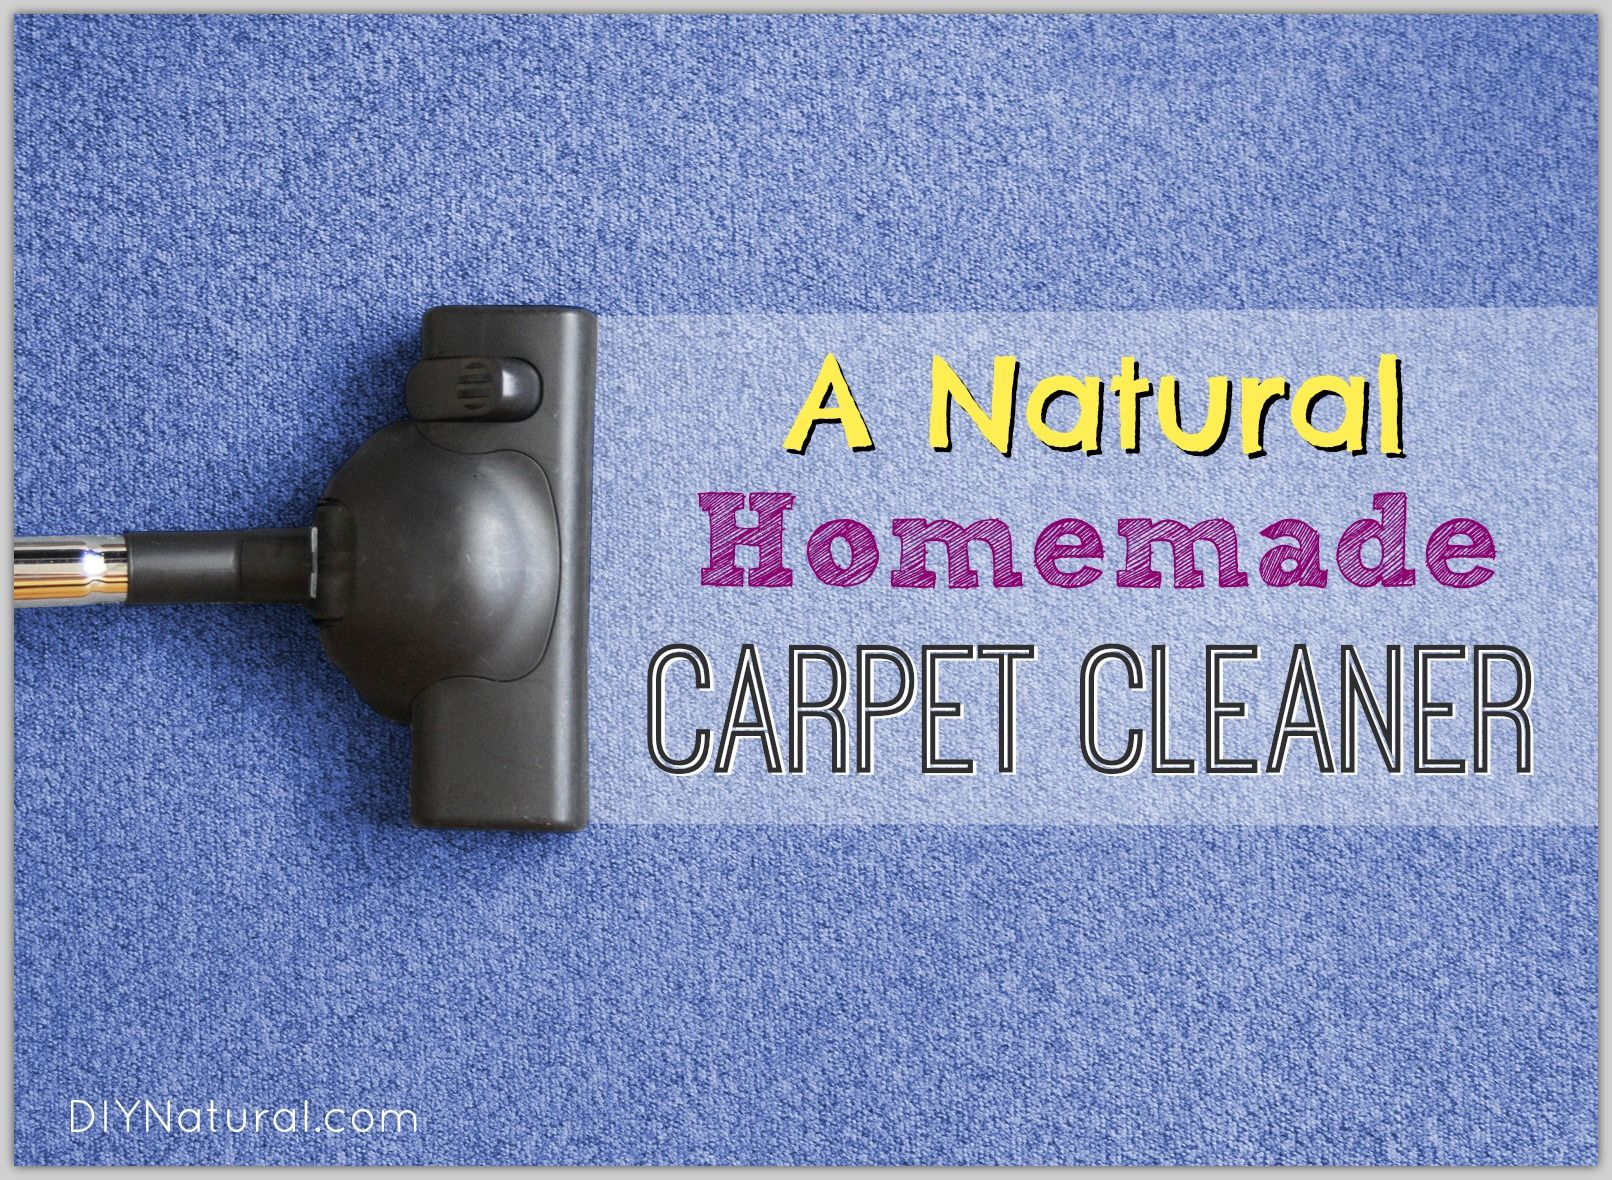 Natural Homemade Carpet Cleaner & Stain Remover